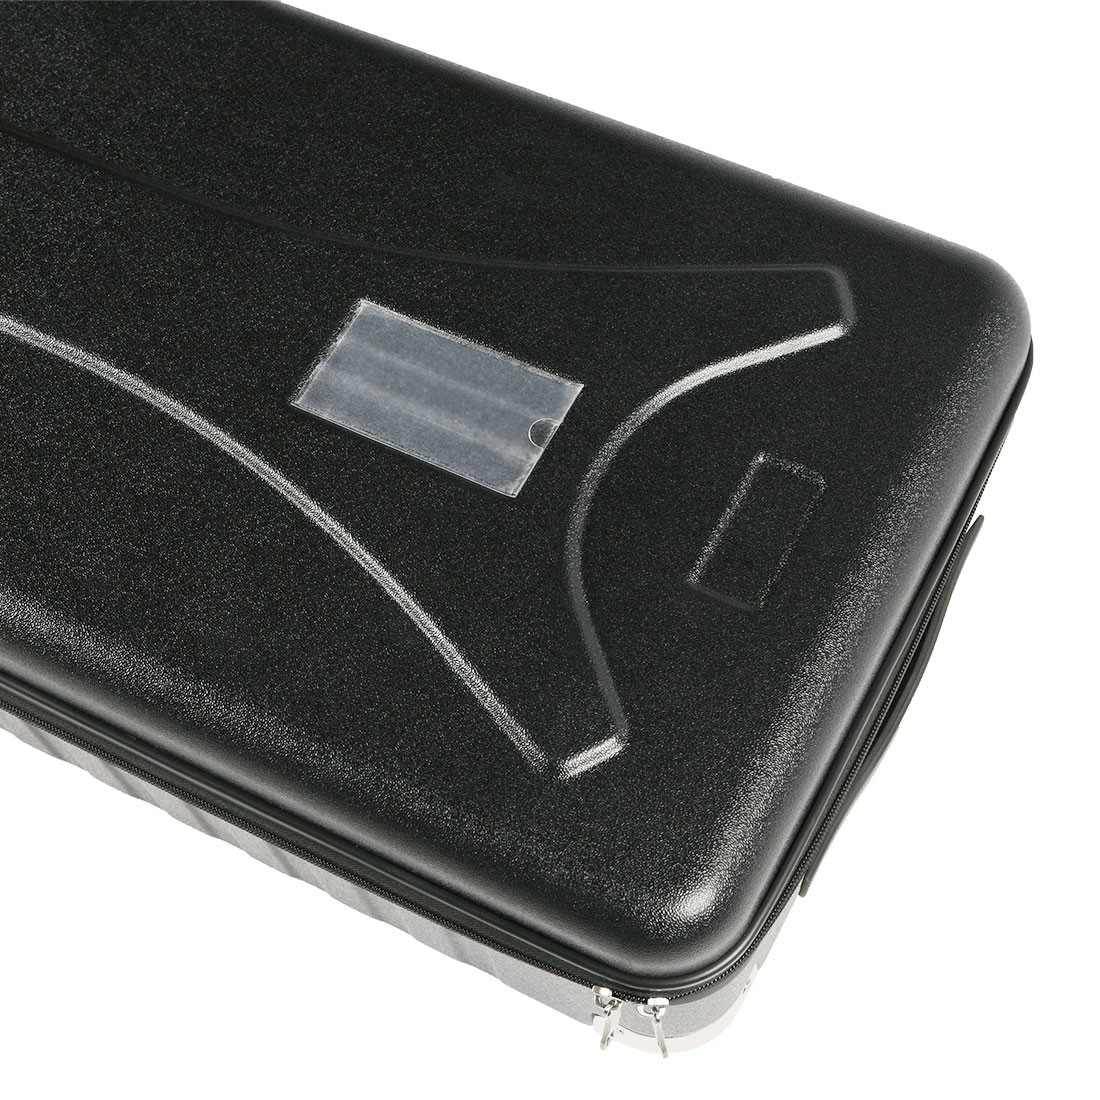 Lucid Hard Shipping Case